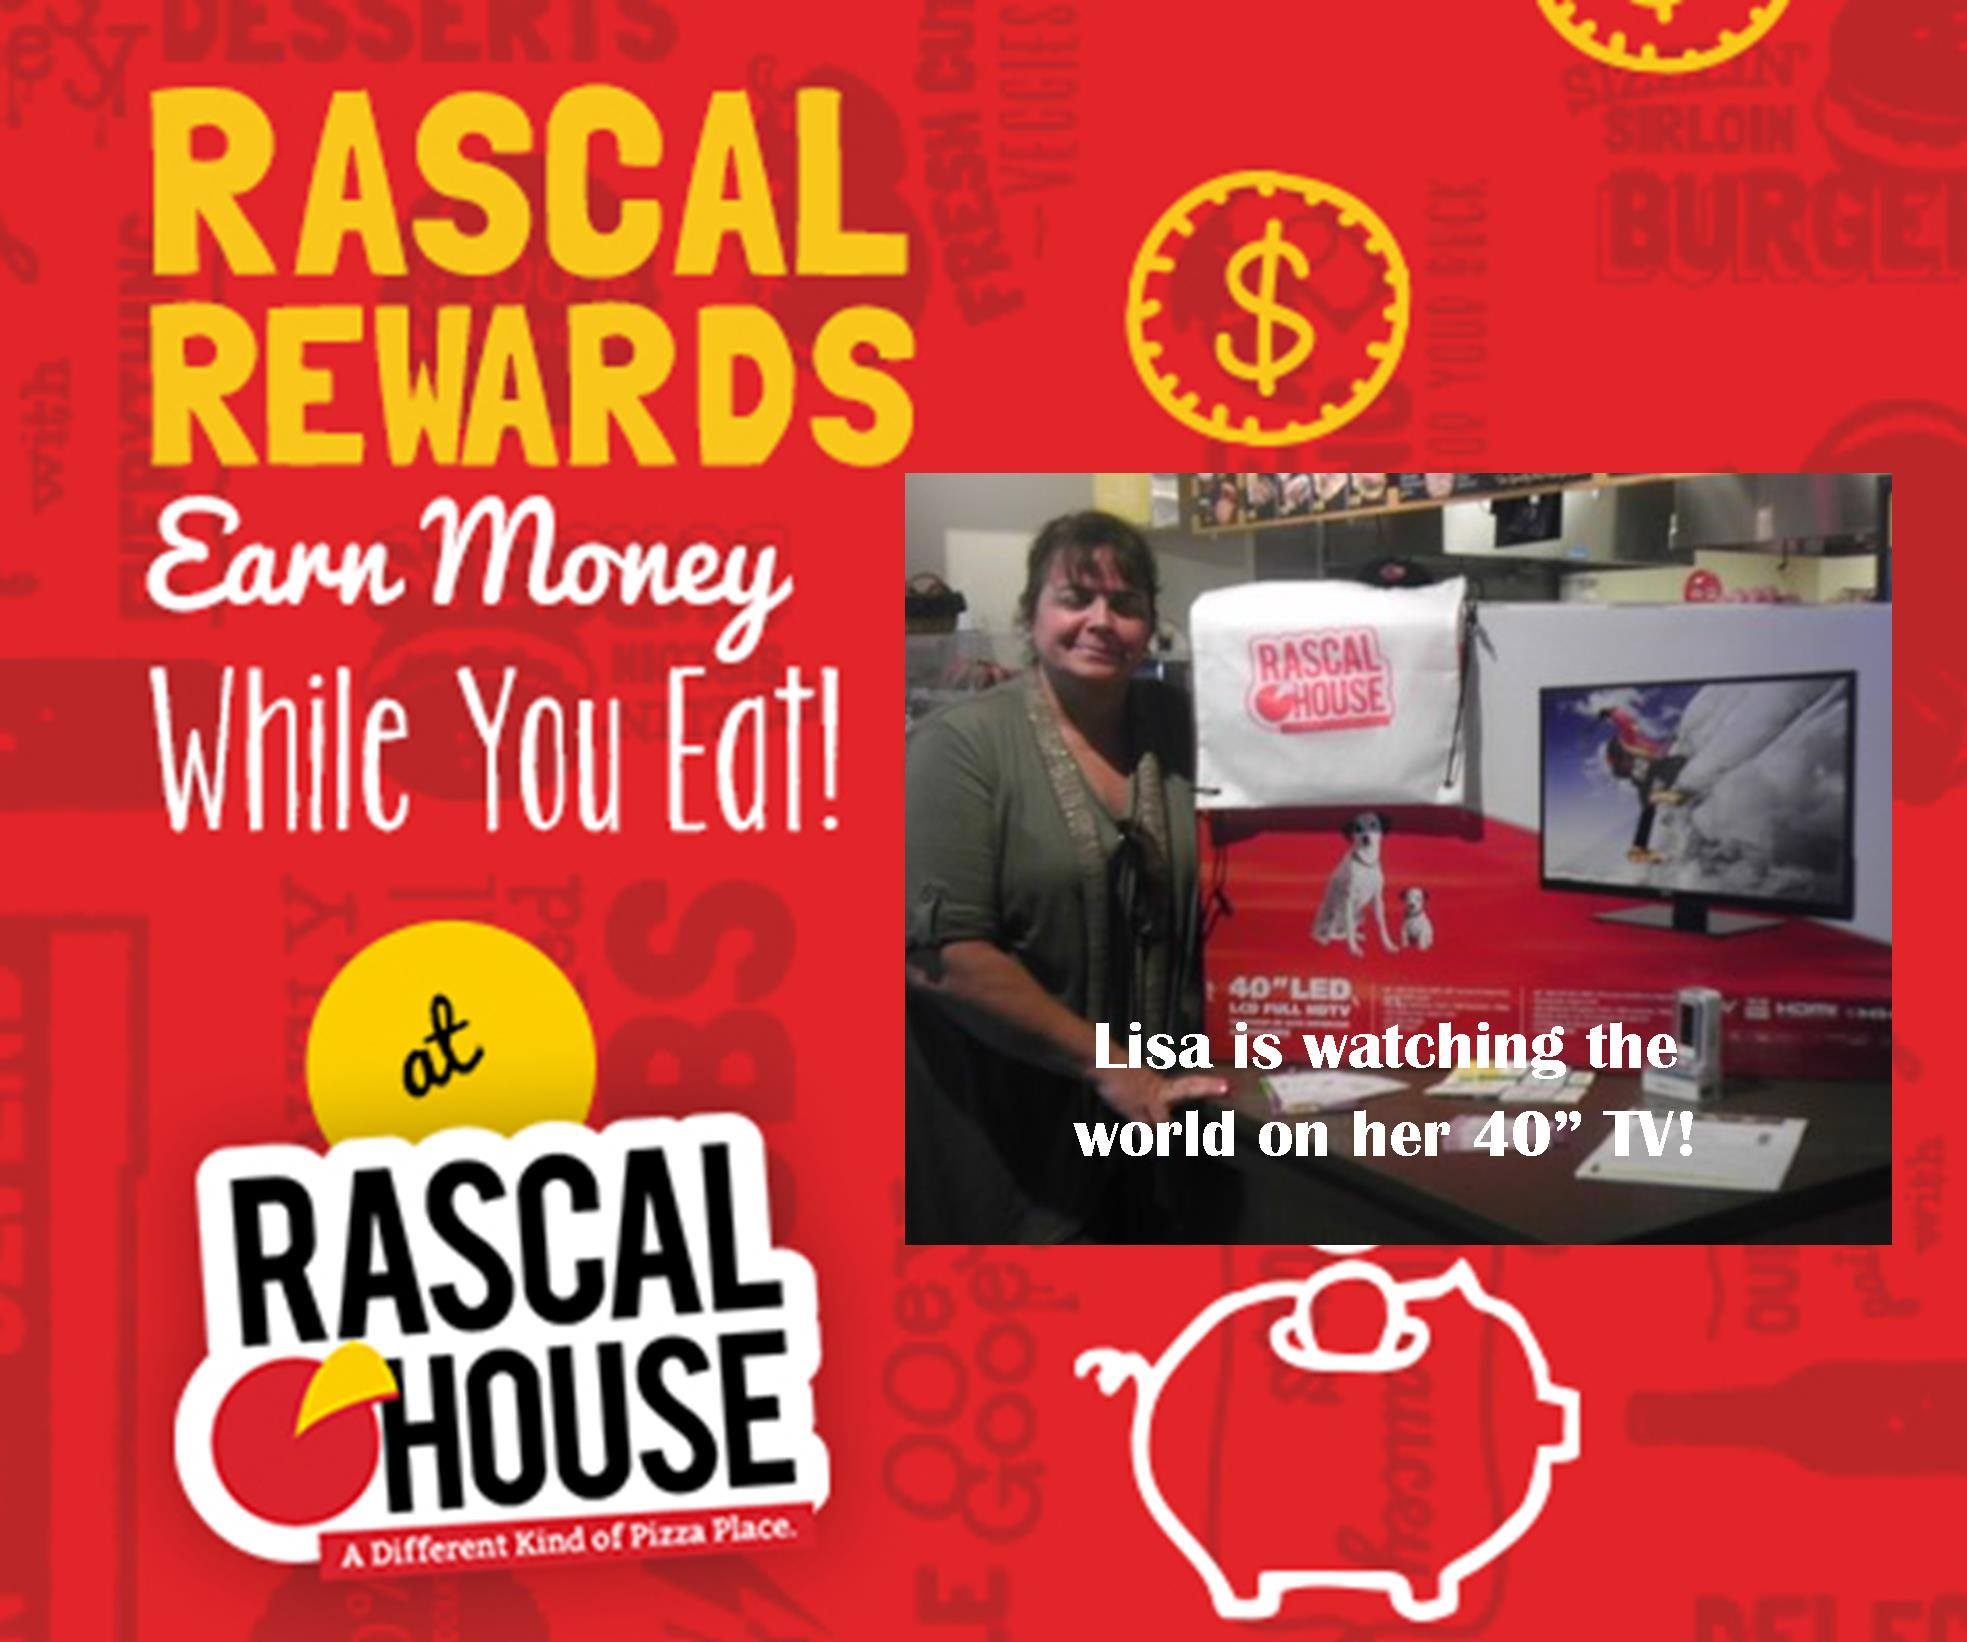 rascal rewards winner